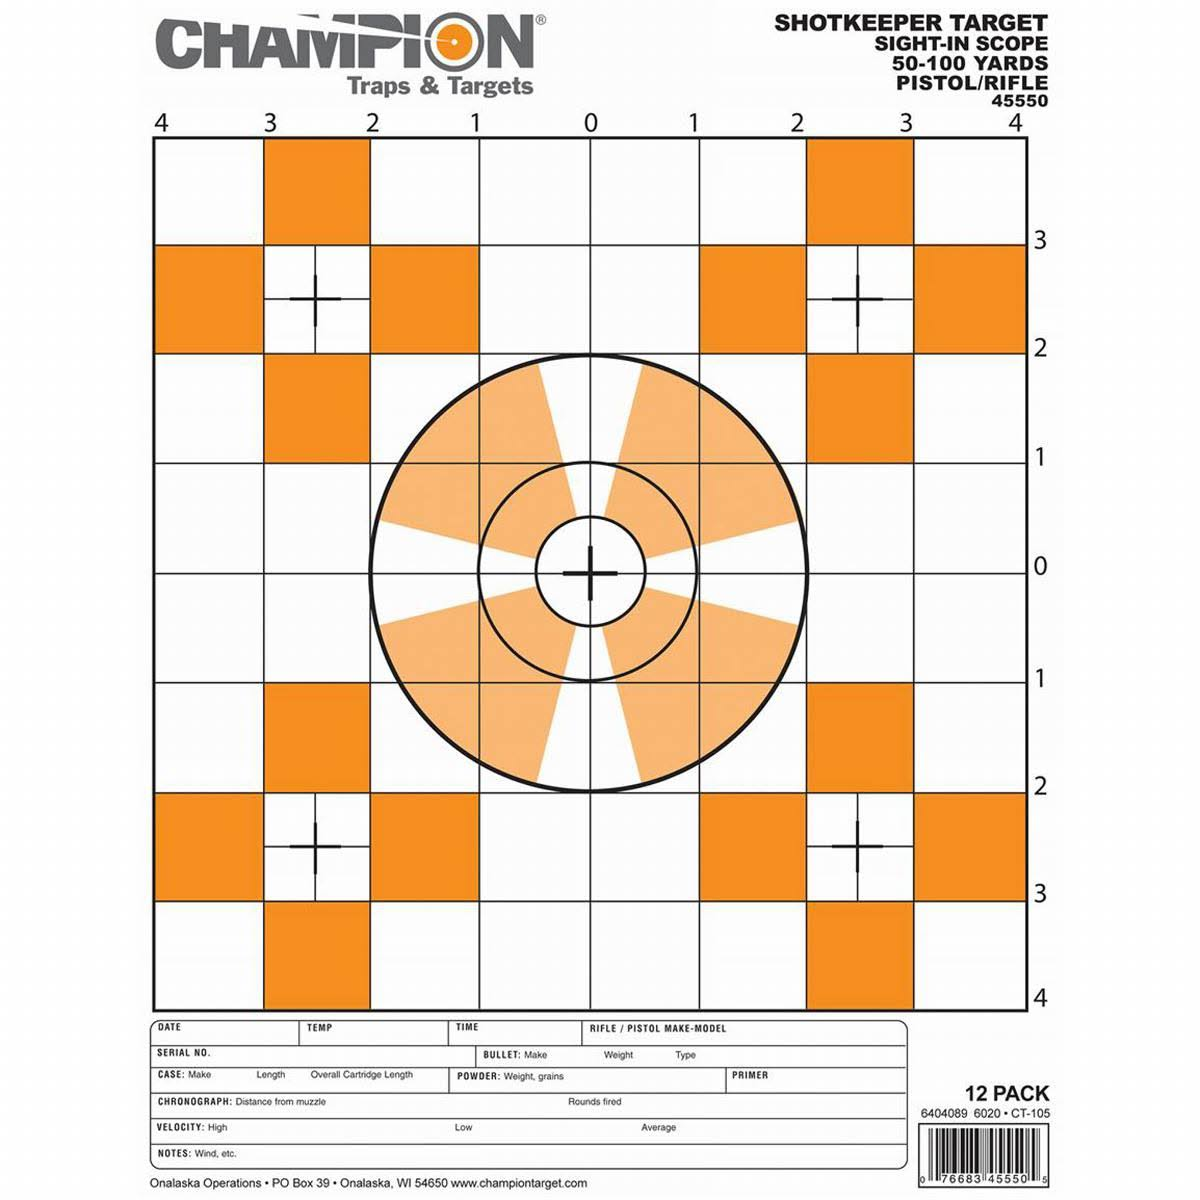 Champion Traps and Targets Shotkeeper Sightin Scope Target (Per 12) Small